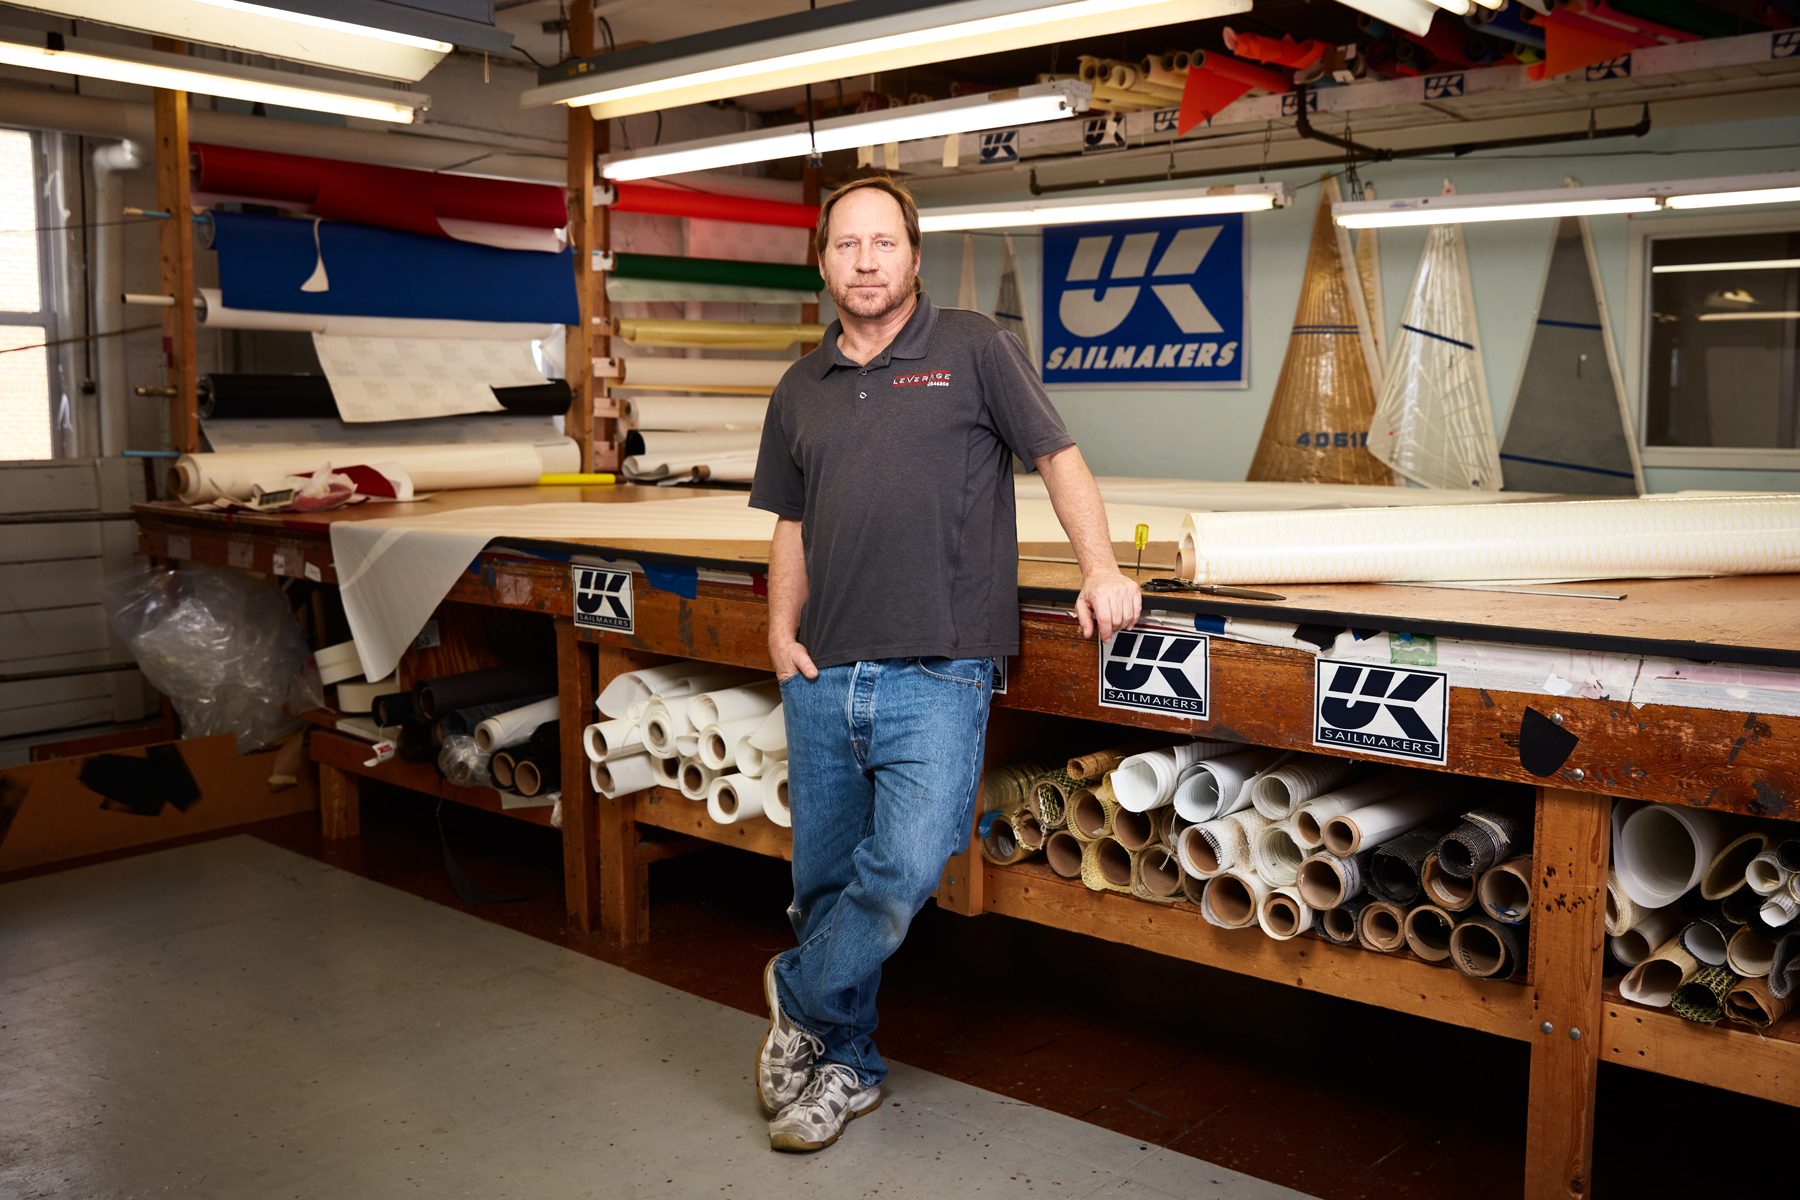 Peter Sherman, Sailmaker